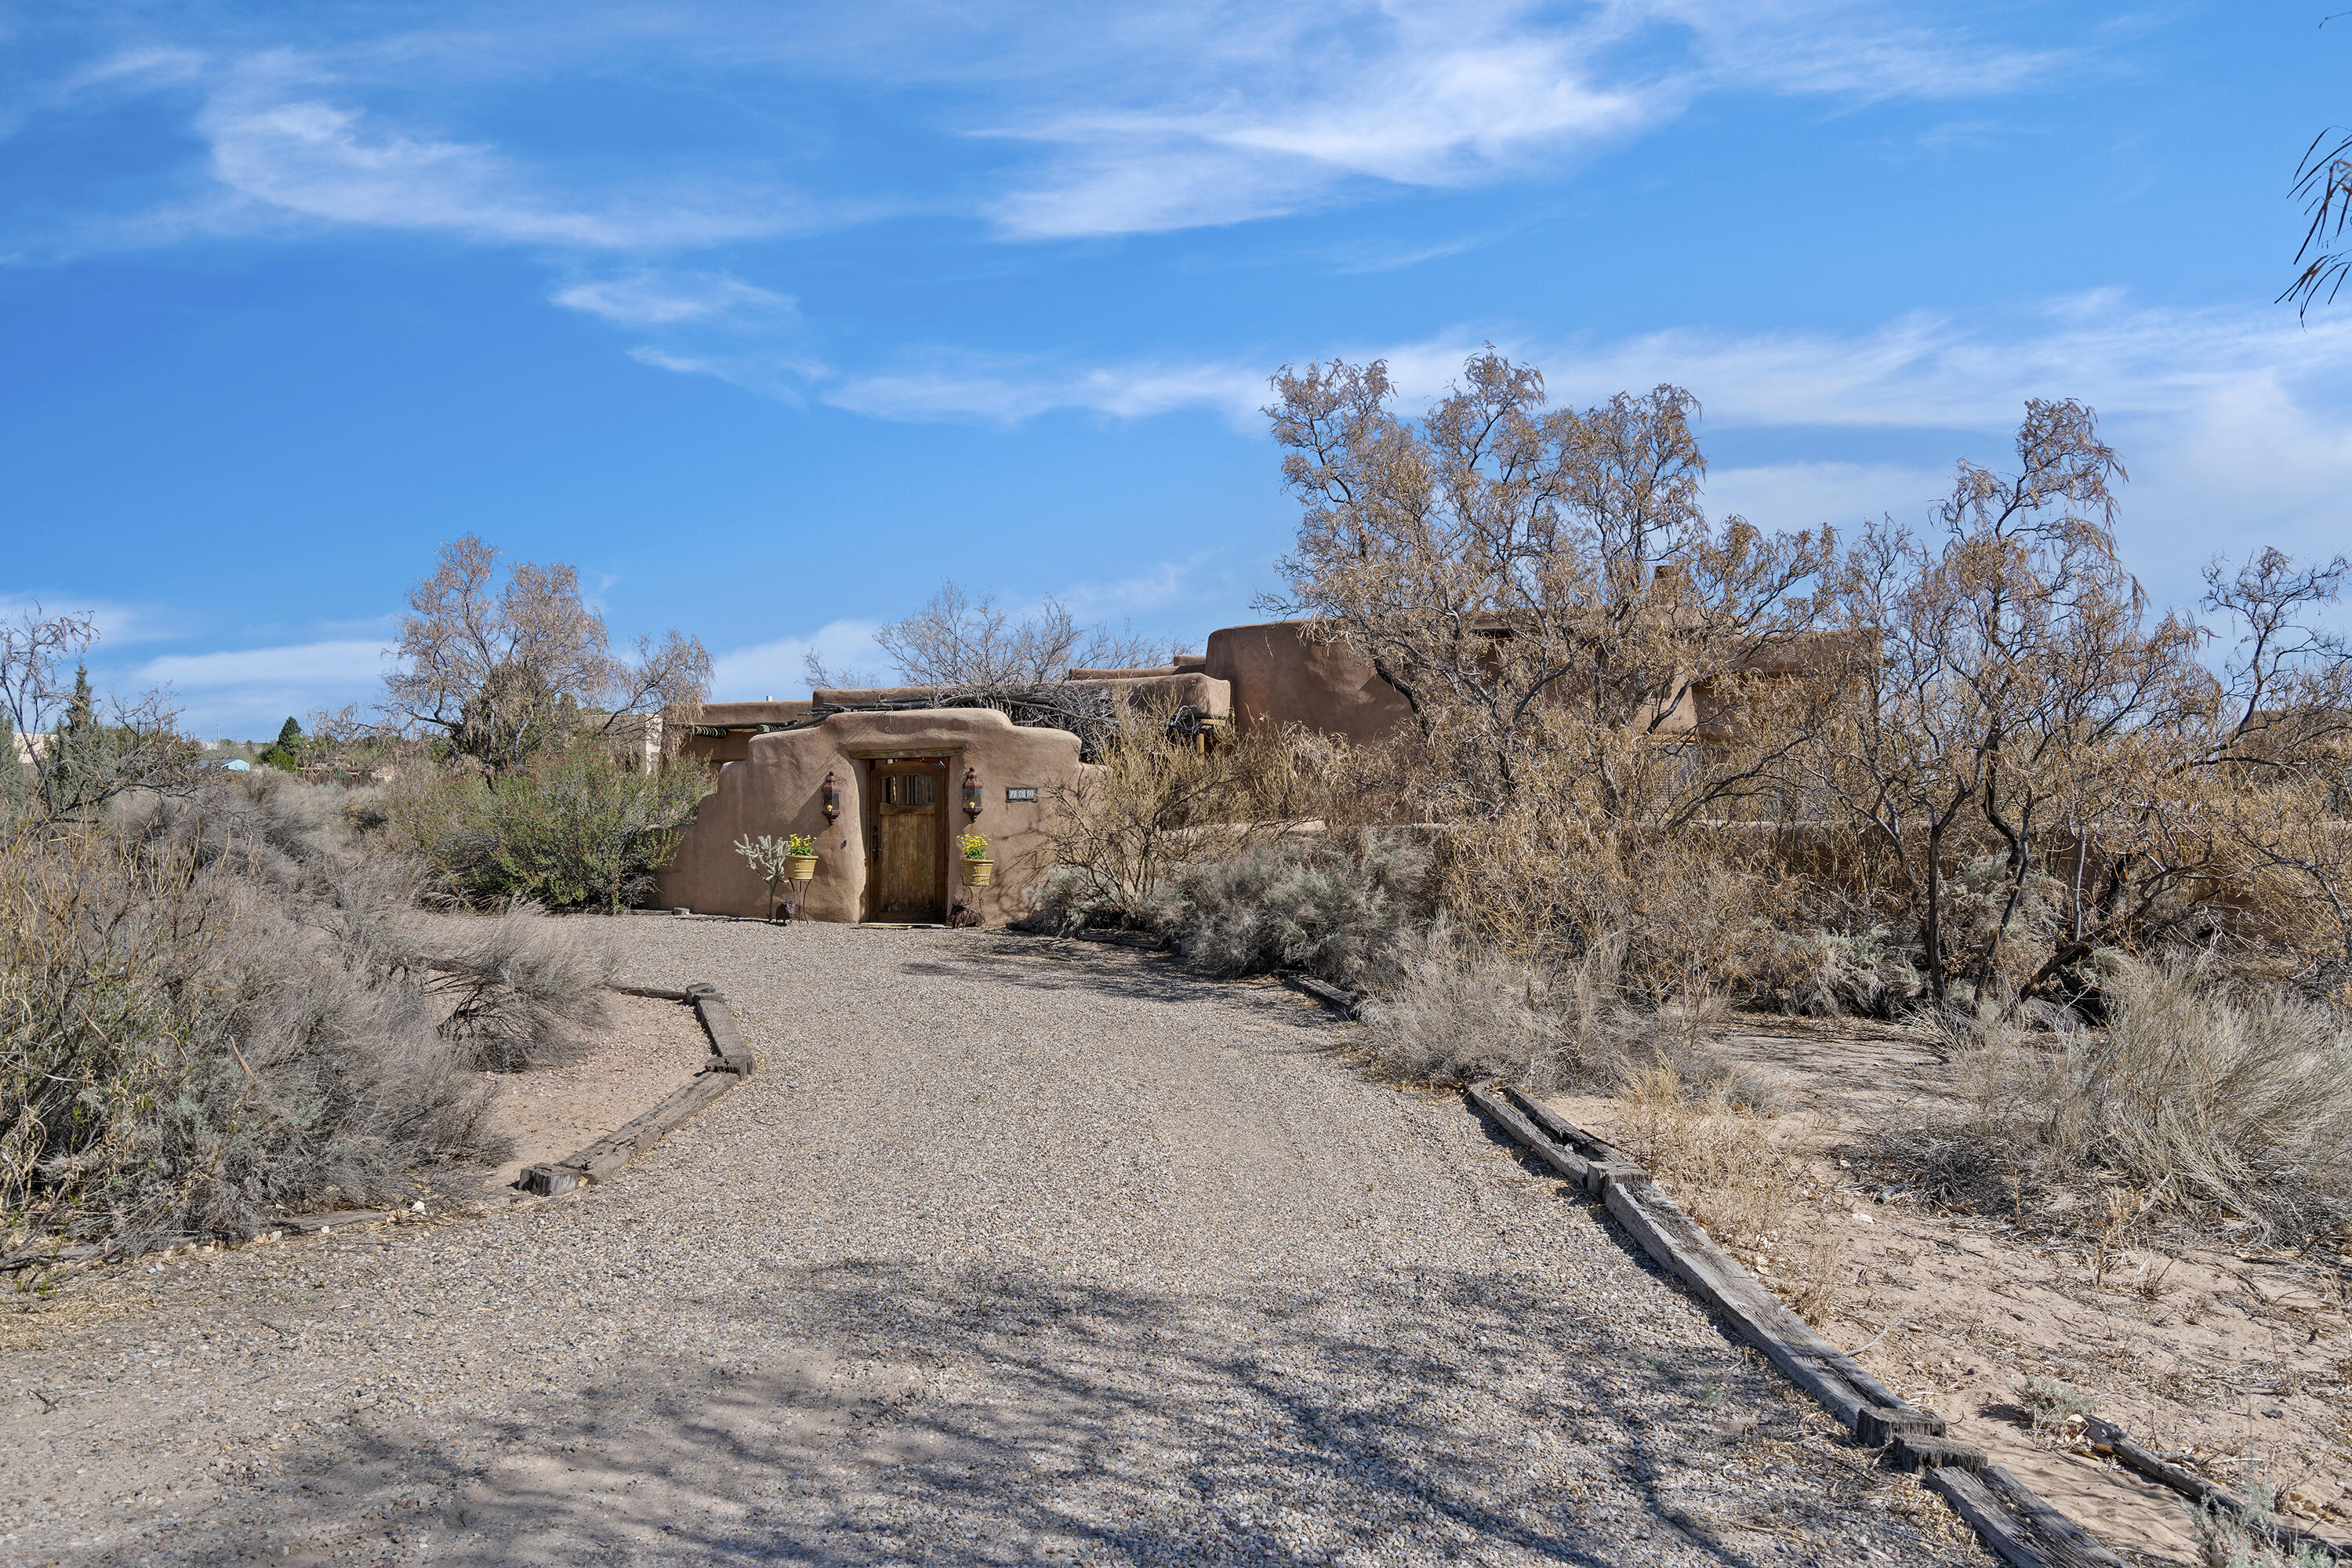 160 CIELO AZUL Property Photo - Corrales, NM real estate listing